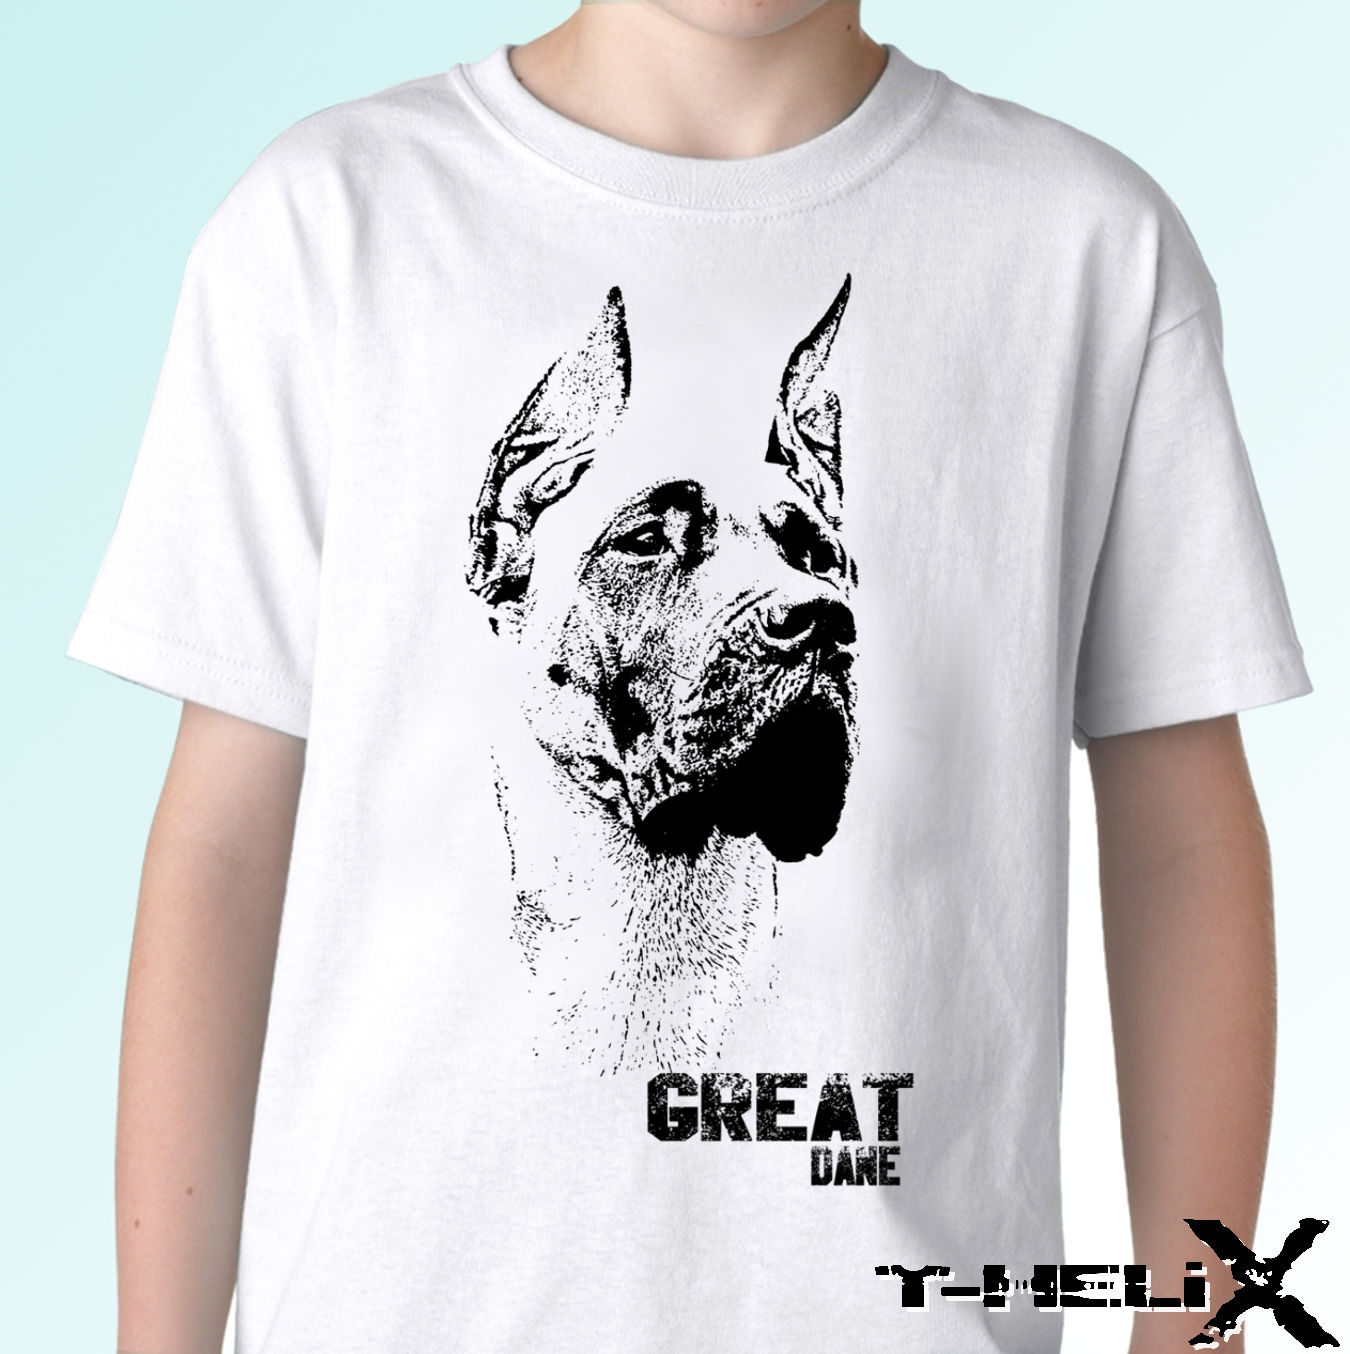 Great Dane - <font><b>dog</b></font> t shirt top tee garman <font><b>dog</b></font> design - mens womens Cool Casual pride t shirt men <font><b>Unisex</b></font> New Fashion <font><b>tshirt</b></font> image